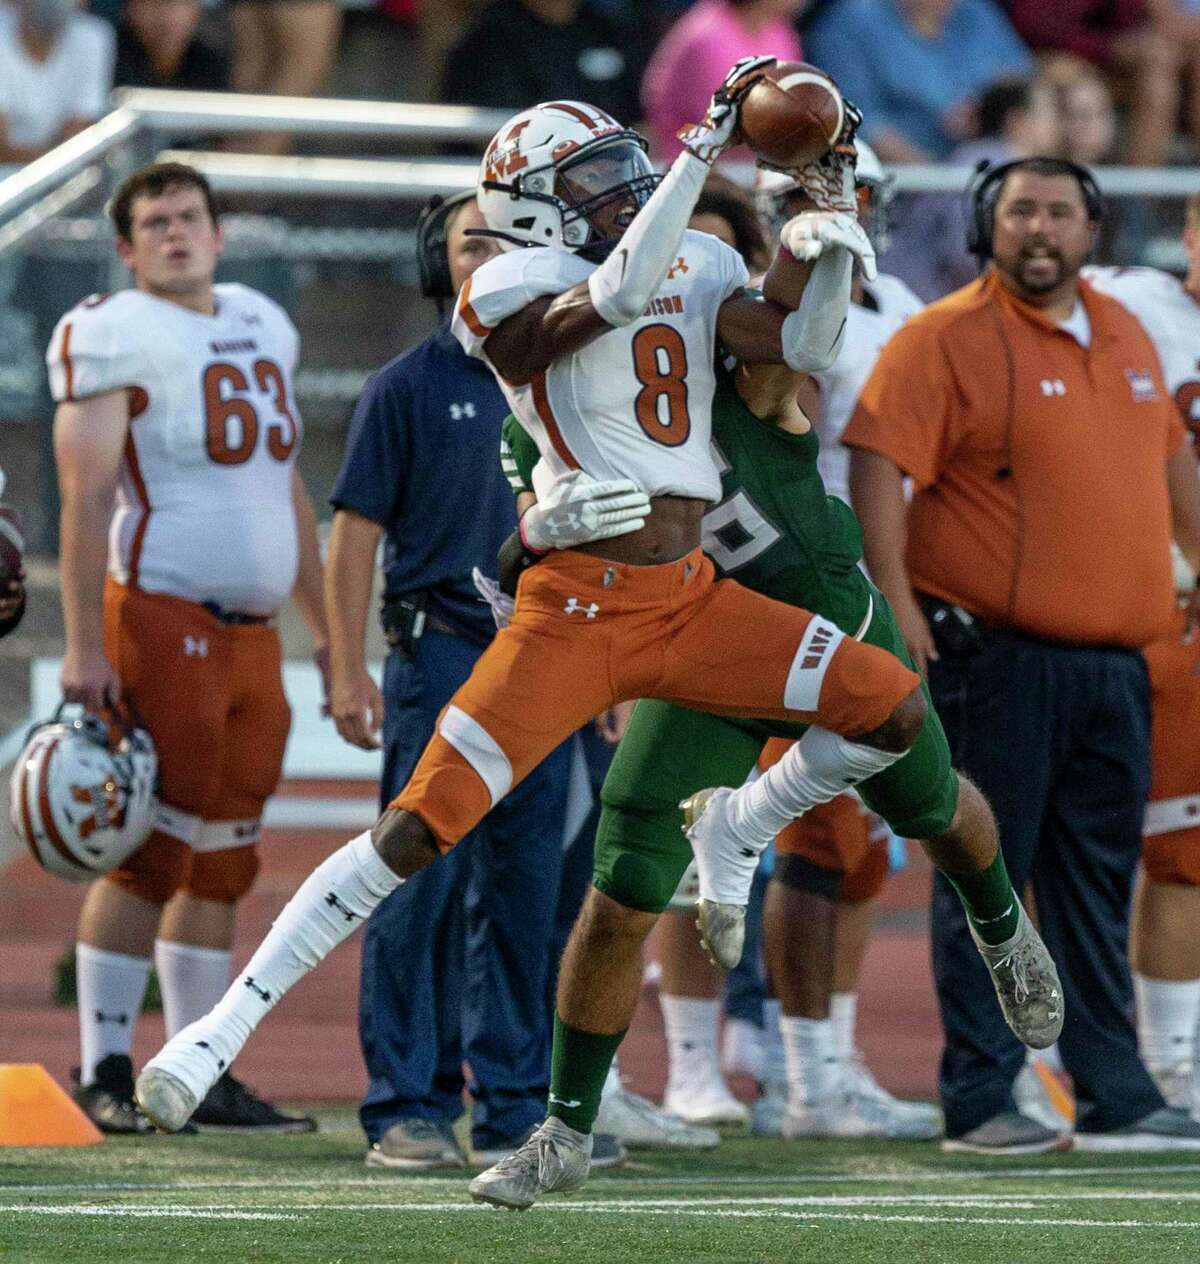 Madison defensive back Demetreon Delane almost intercepts a pass Friday, Oct. 1, 2021 intended for Reagan's Tre'Shawn Jones during the first half of the Mavericks' game against the Rattlers at Heroes Stadium.